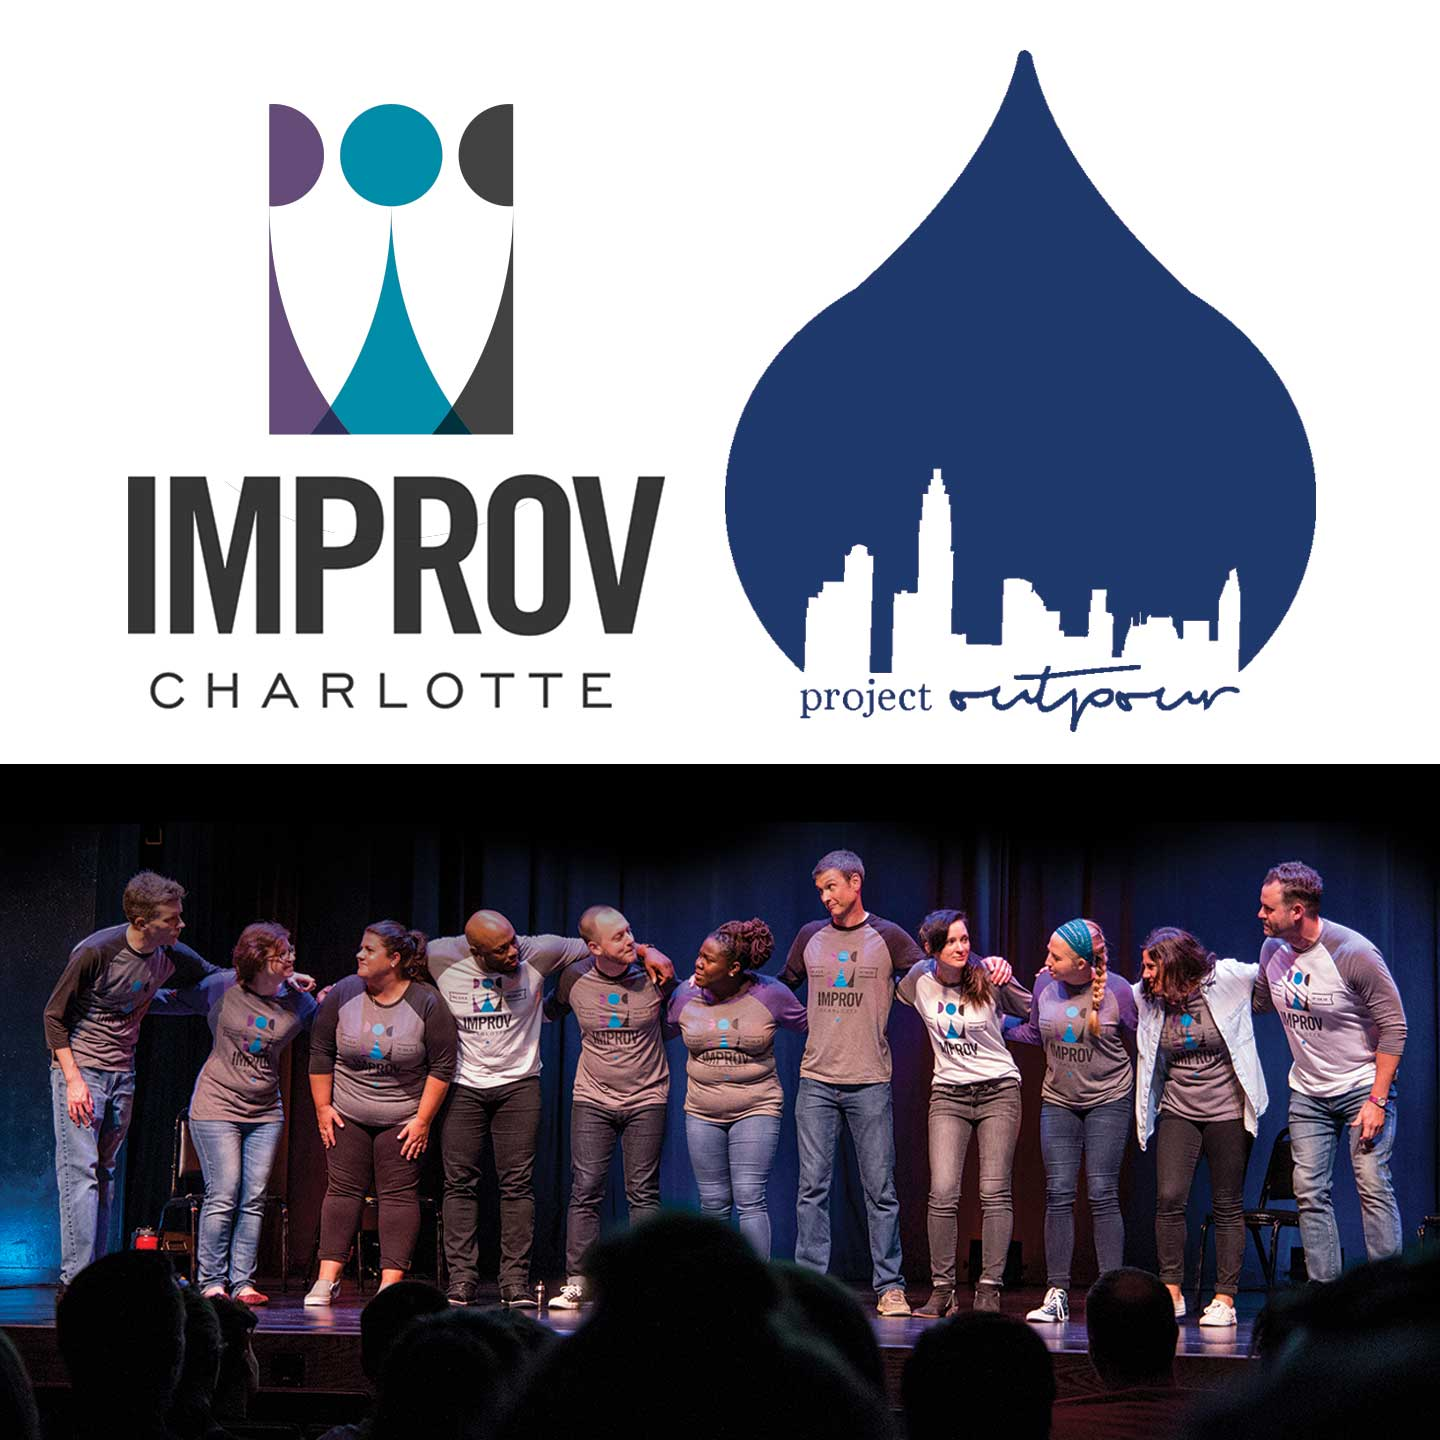 A Night of Improv Comedy Benefitting Project Outpour